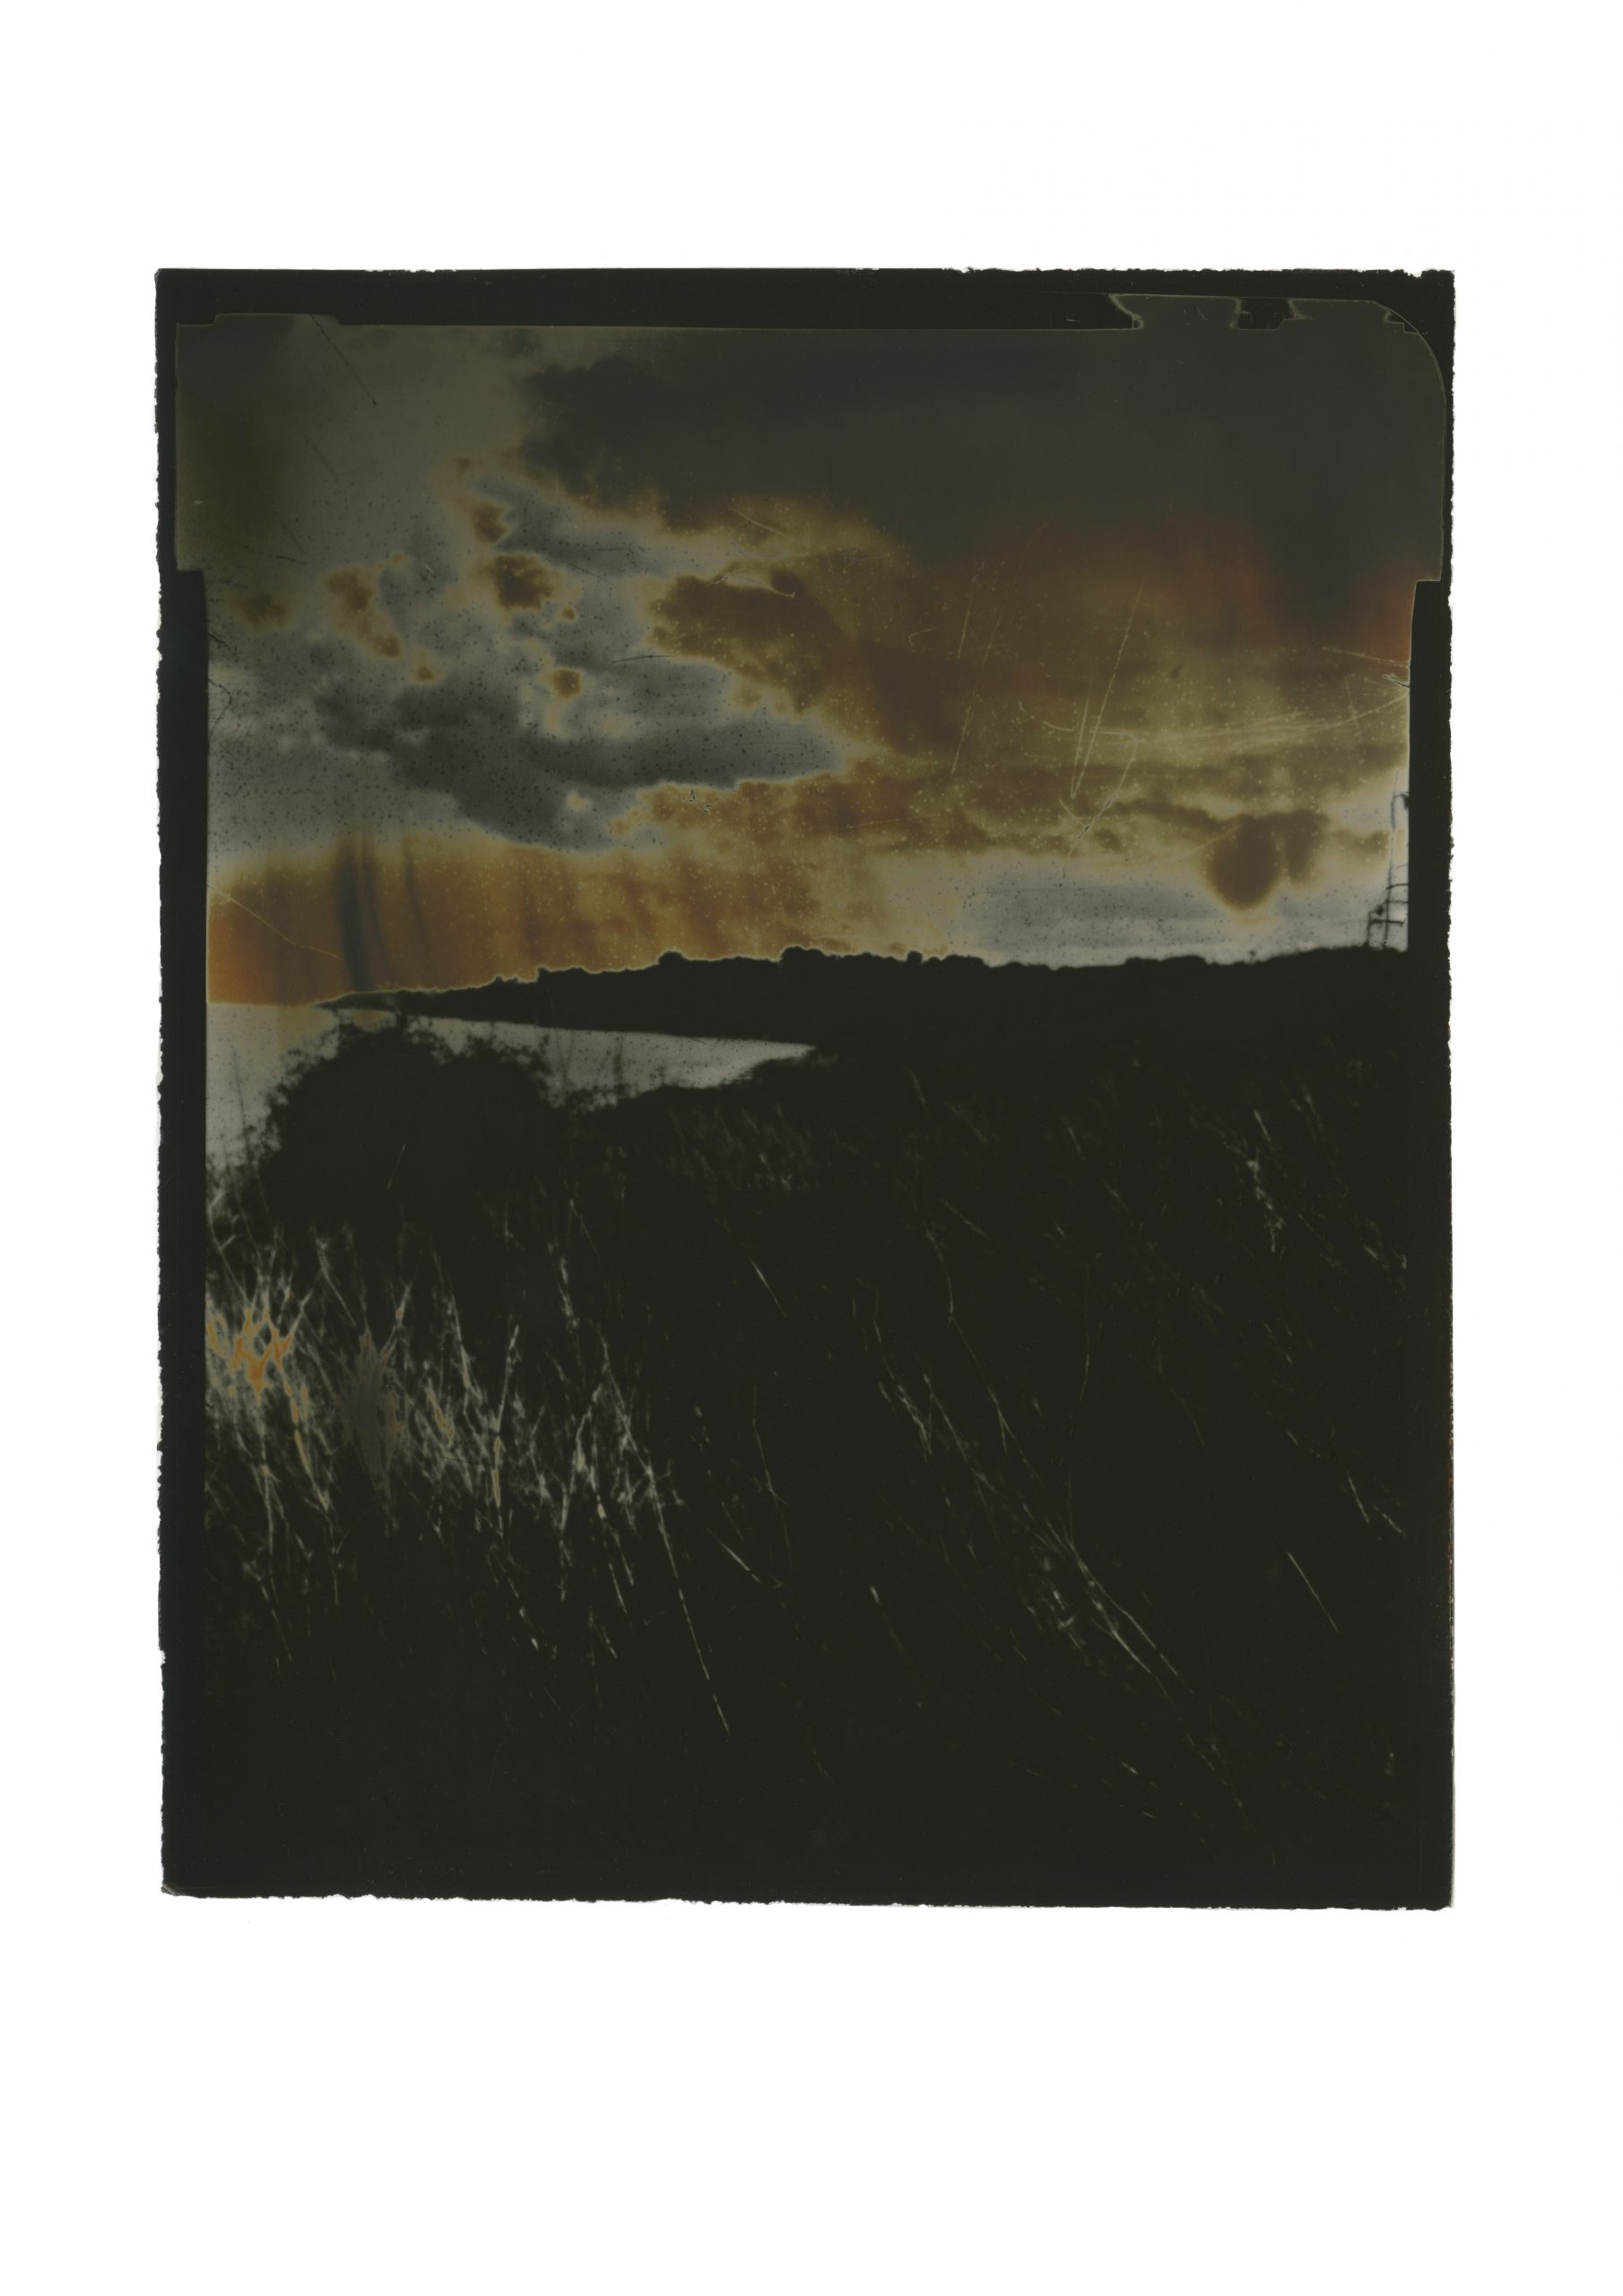 very dark image of coastal headland on the left highlight of grasses orange sky with brooding clouds